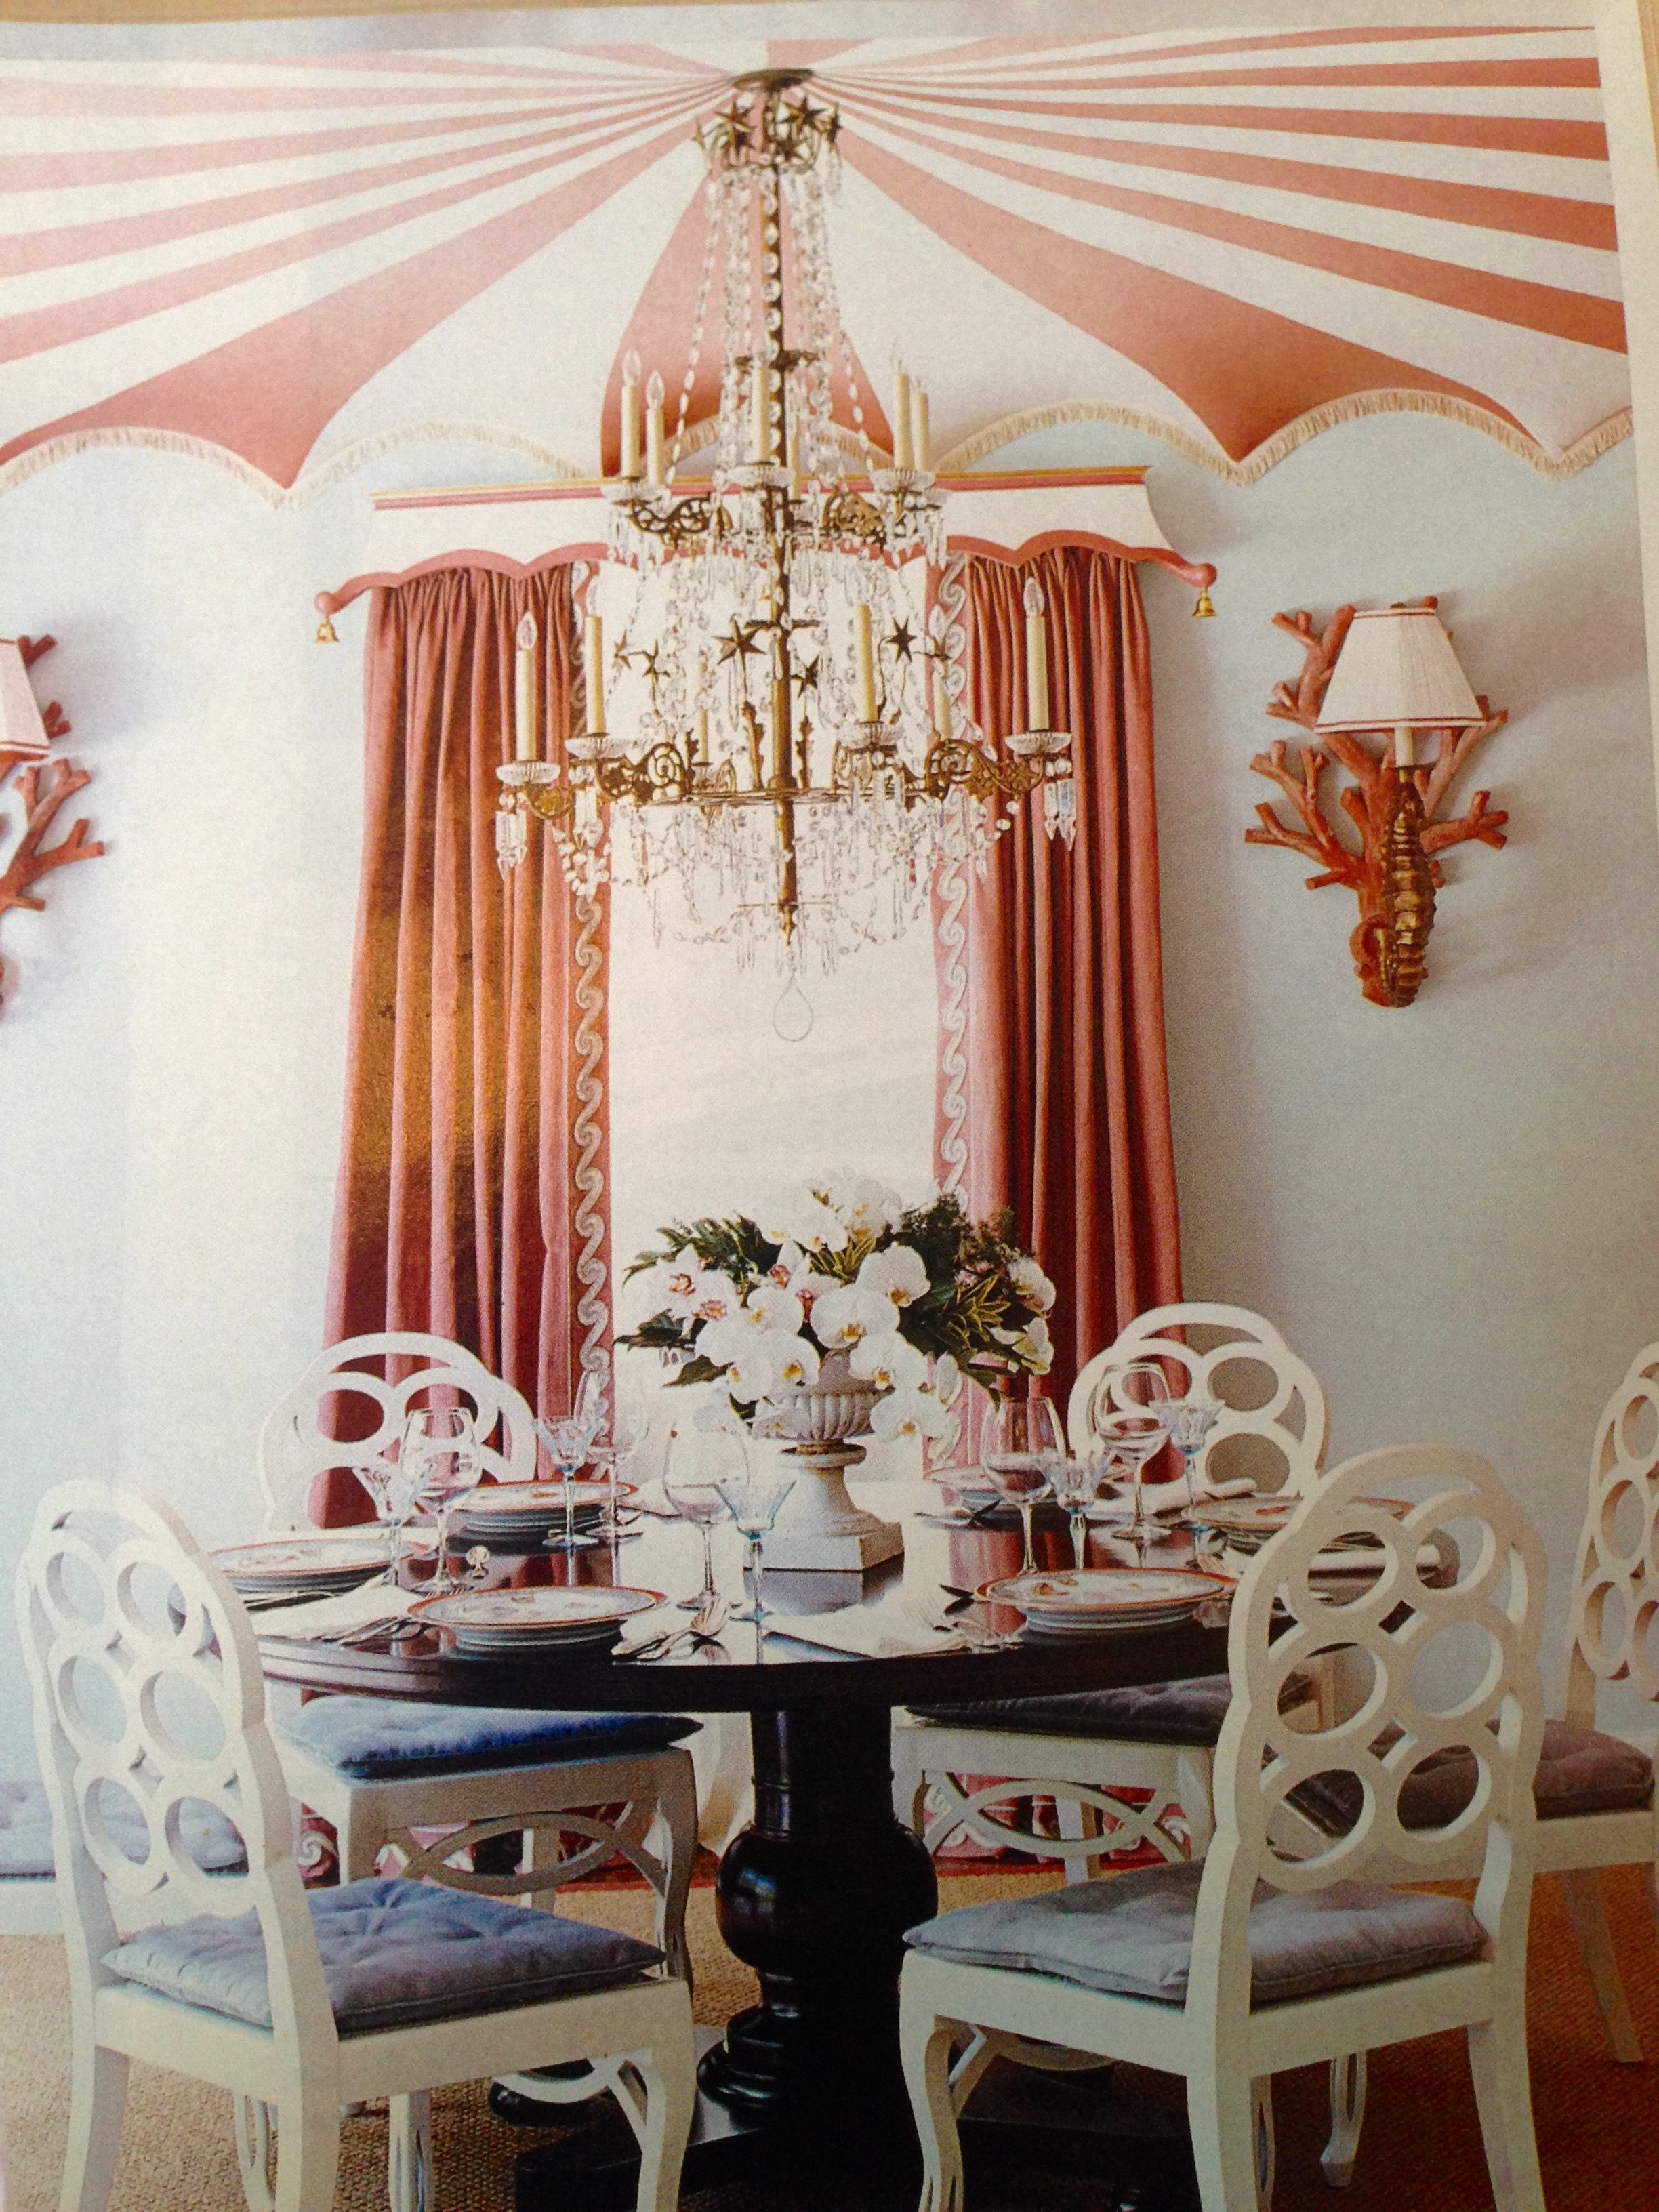 This playful tented ceiling was created by Richard Keith Langham.